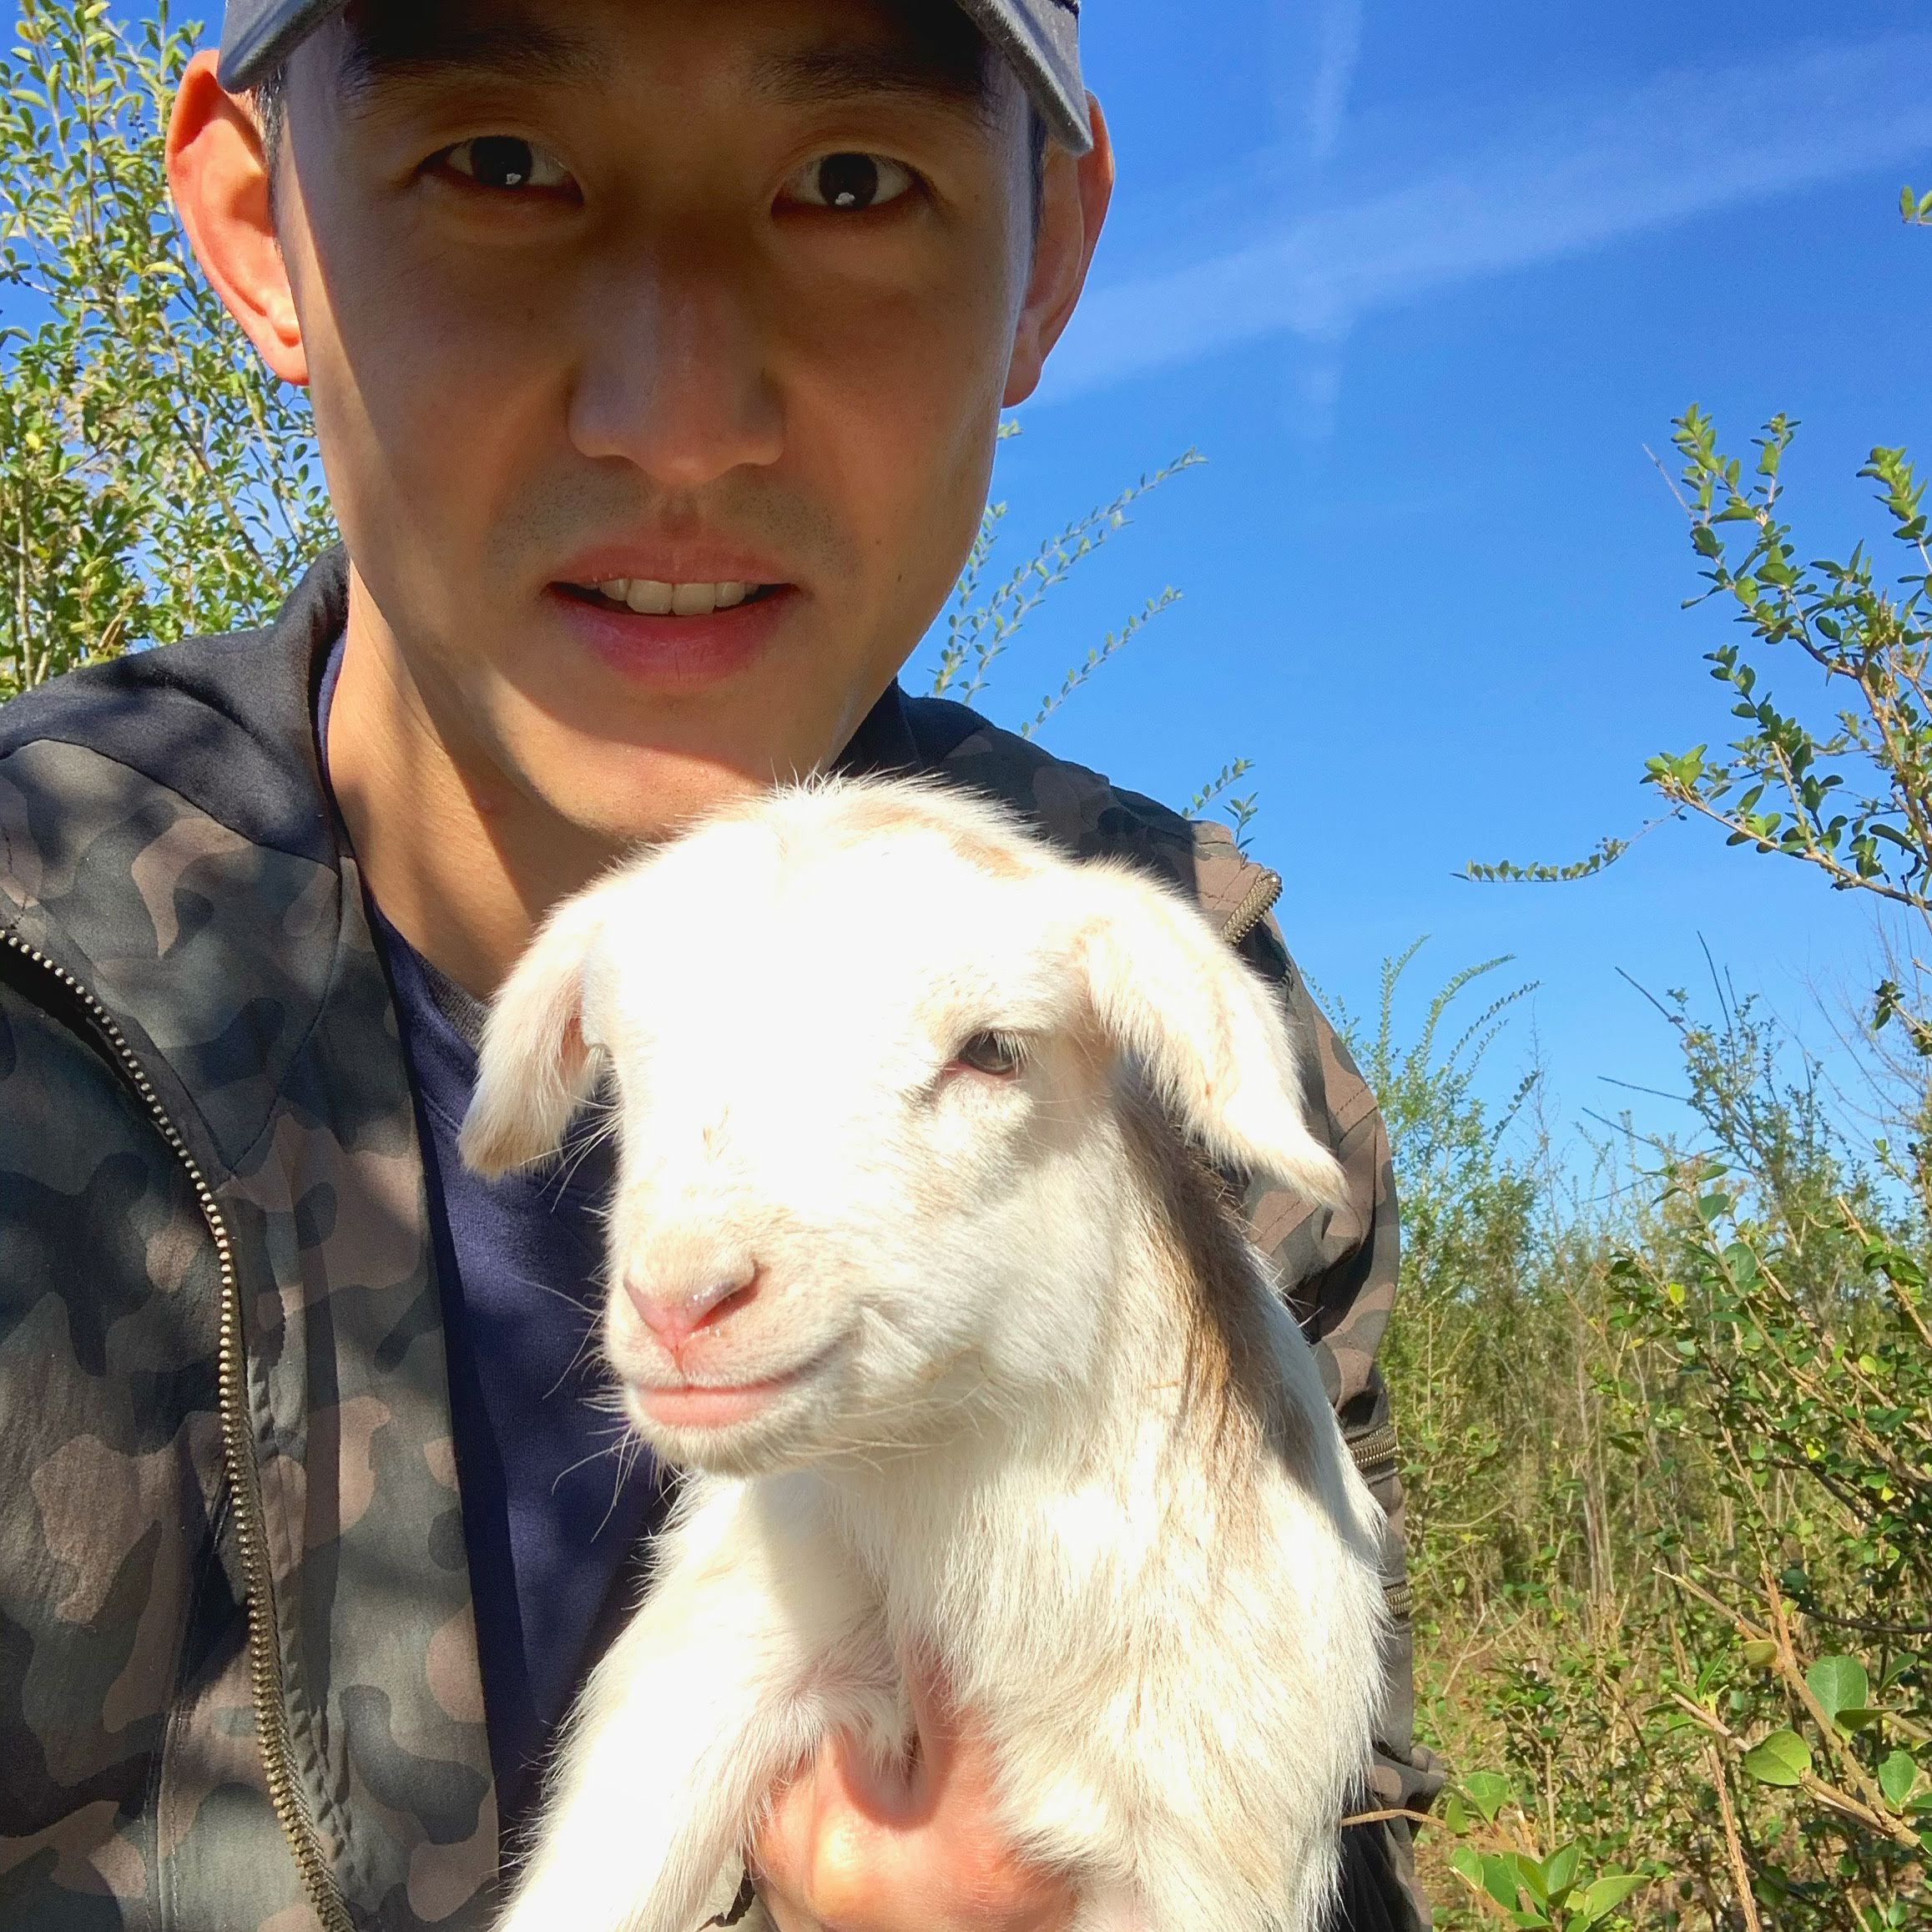 Future farmer holding a lamb